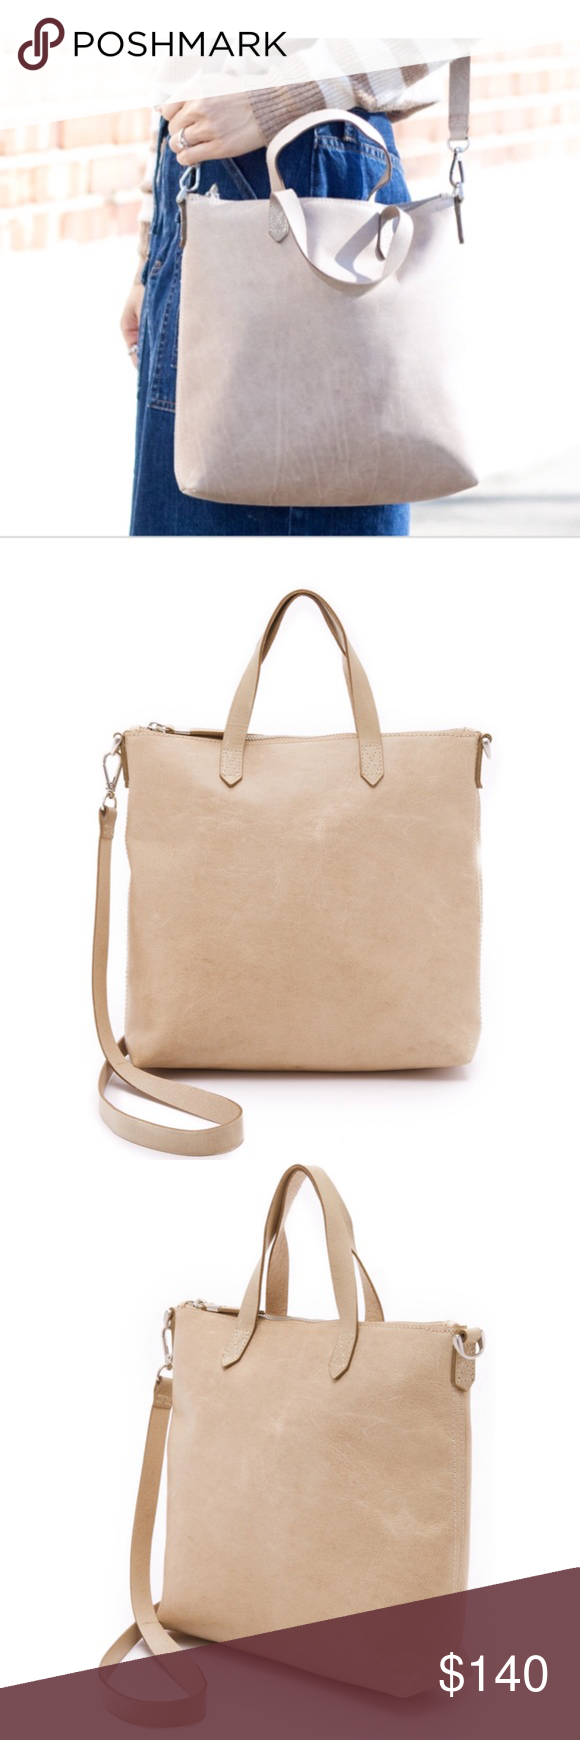 73702fc4c Madewell | Zip Top Leather Crossbody. NWT. Color: Neutral Tan. RARE COLOR